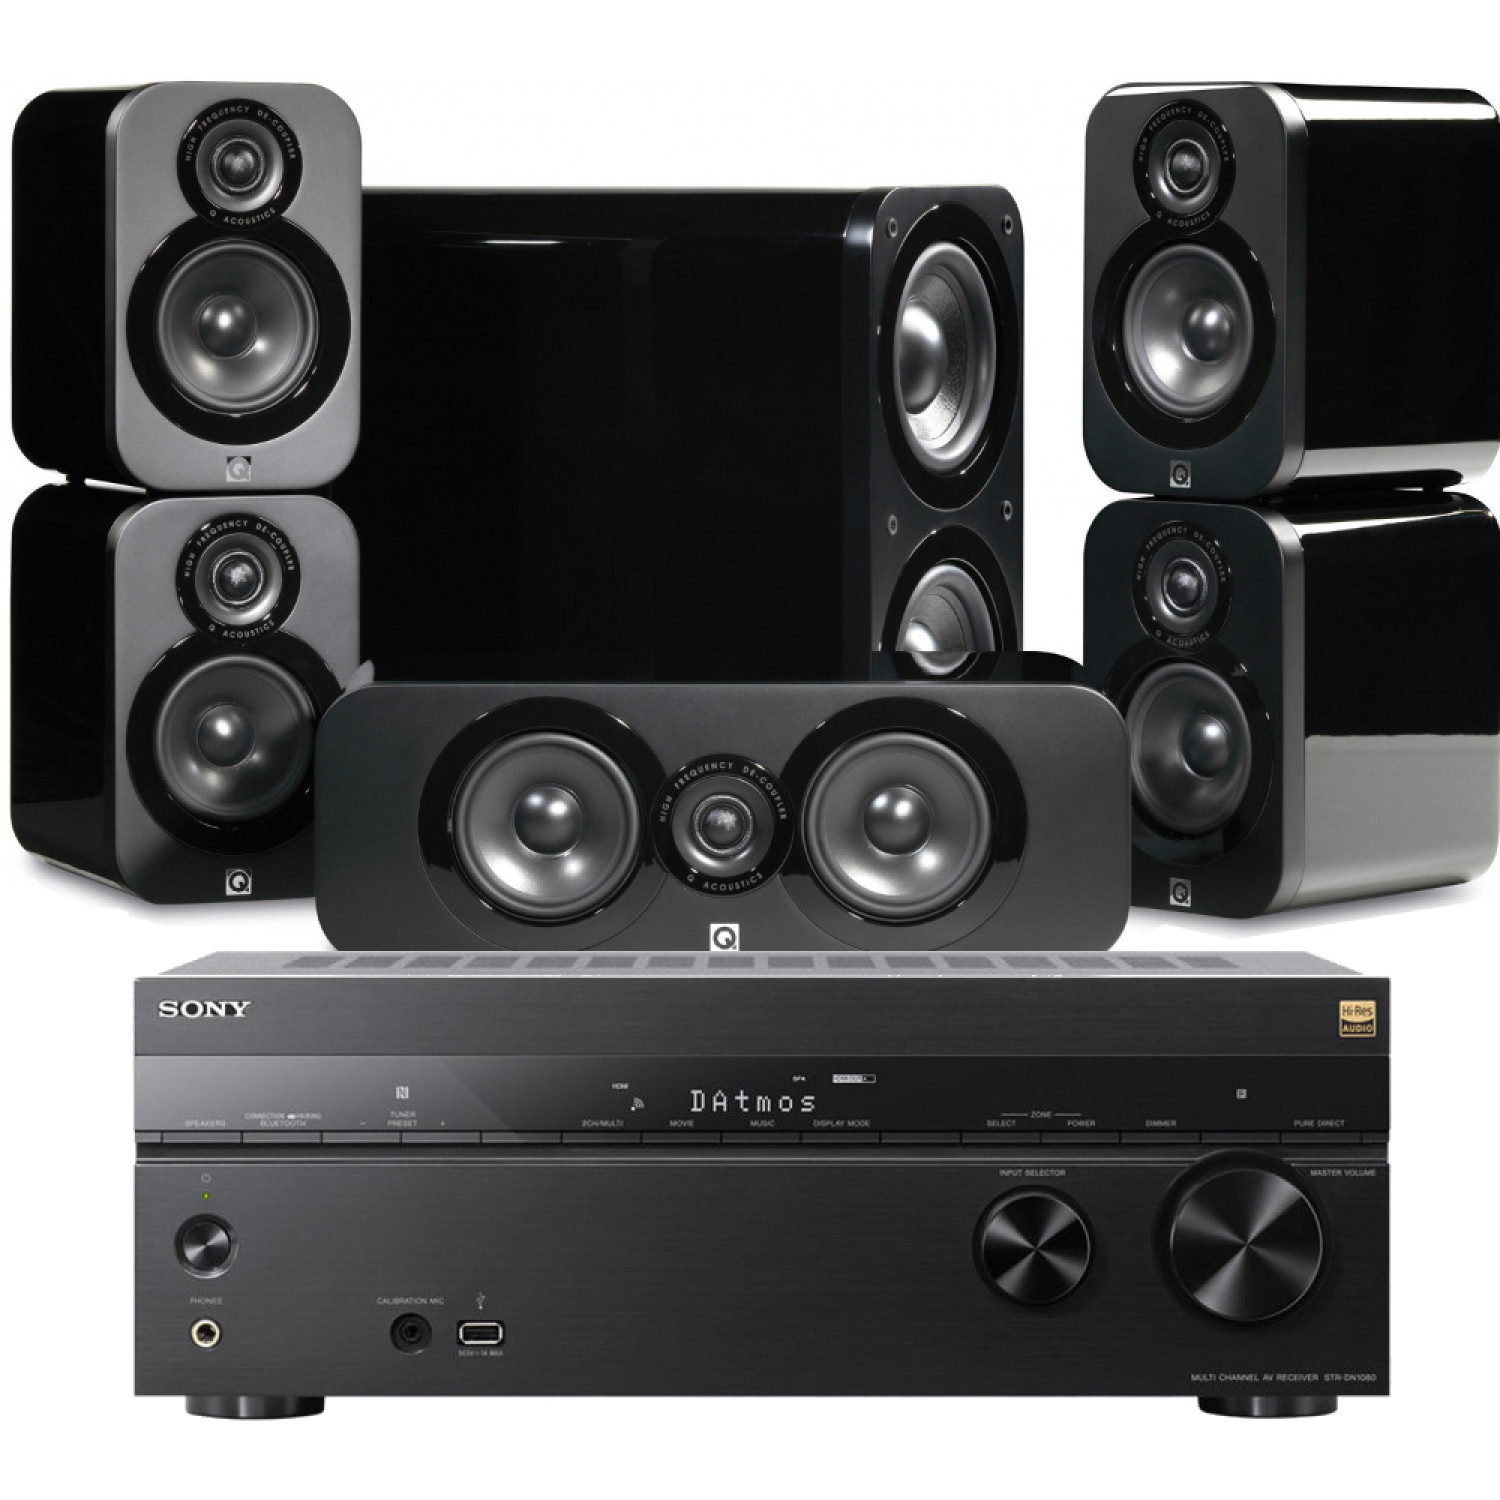 Sony Str Dn1080 Av Receiver With Q Acoustics 3000 Cinema